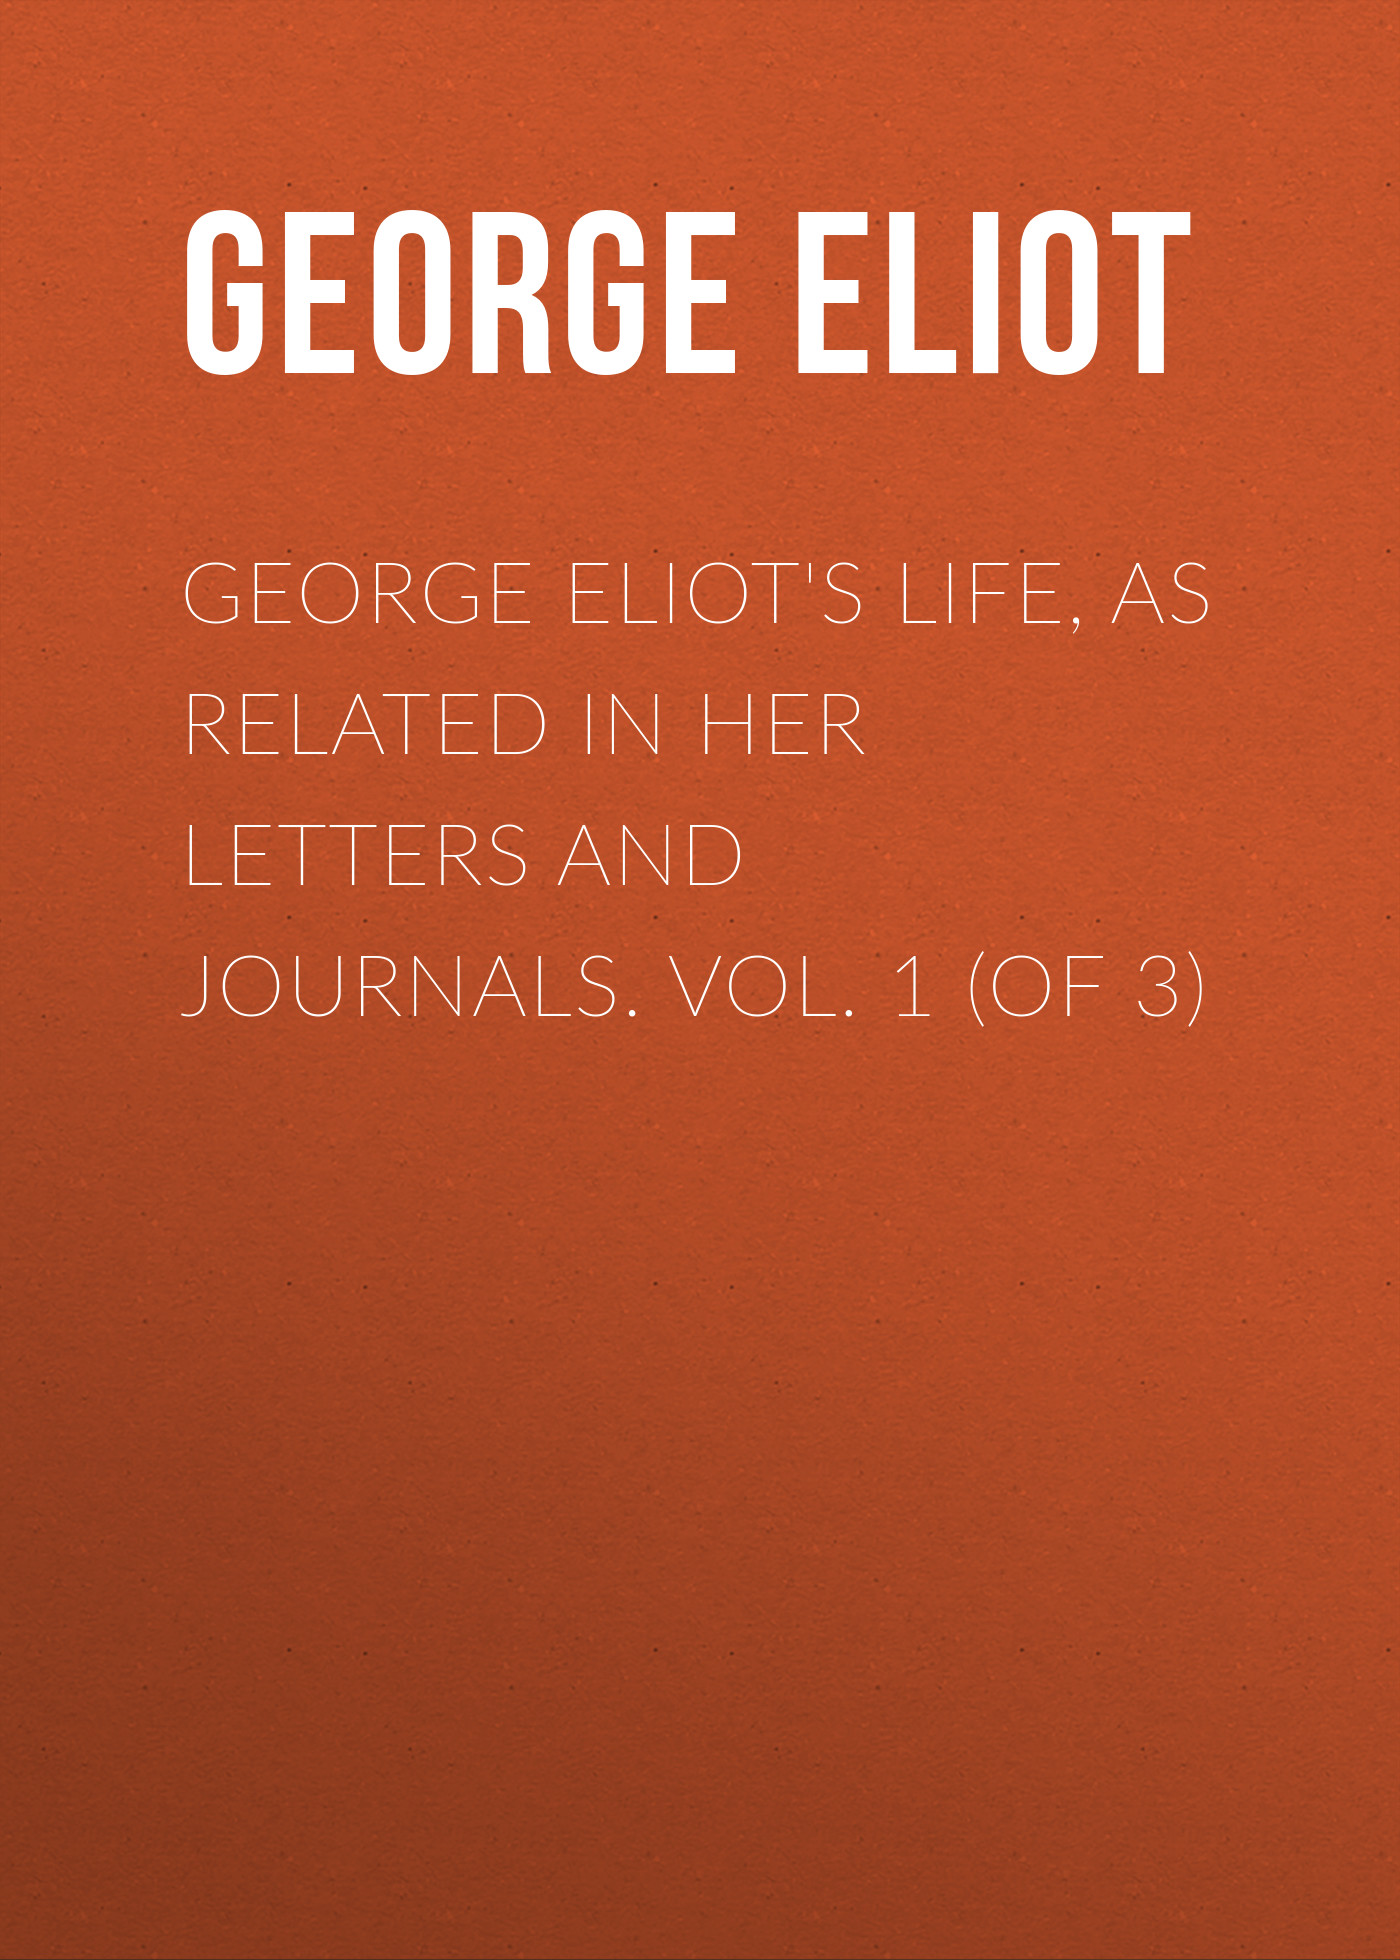 Джордж Элиот George Eliot's Life, as Related in Her Letters and Journals. Vol. 1 (of 3) все цены